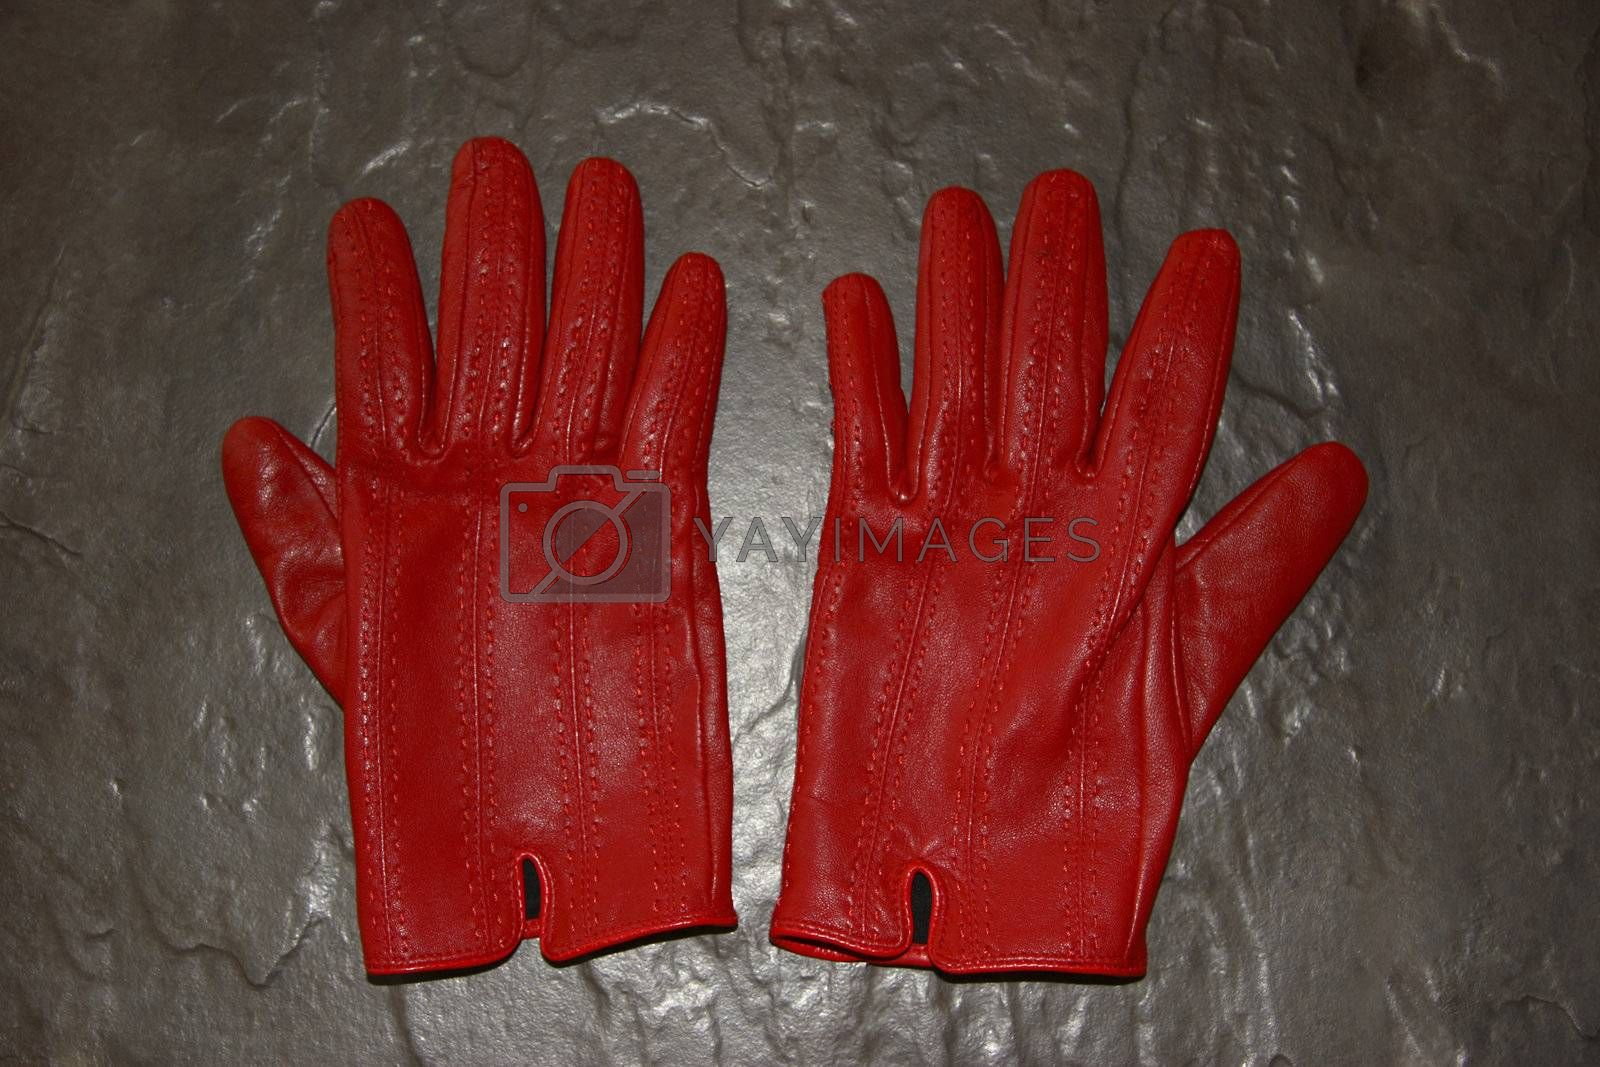 a pair of red gloves